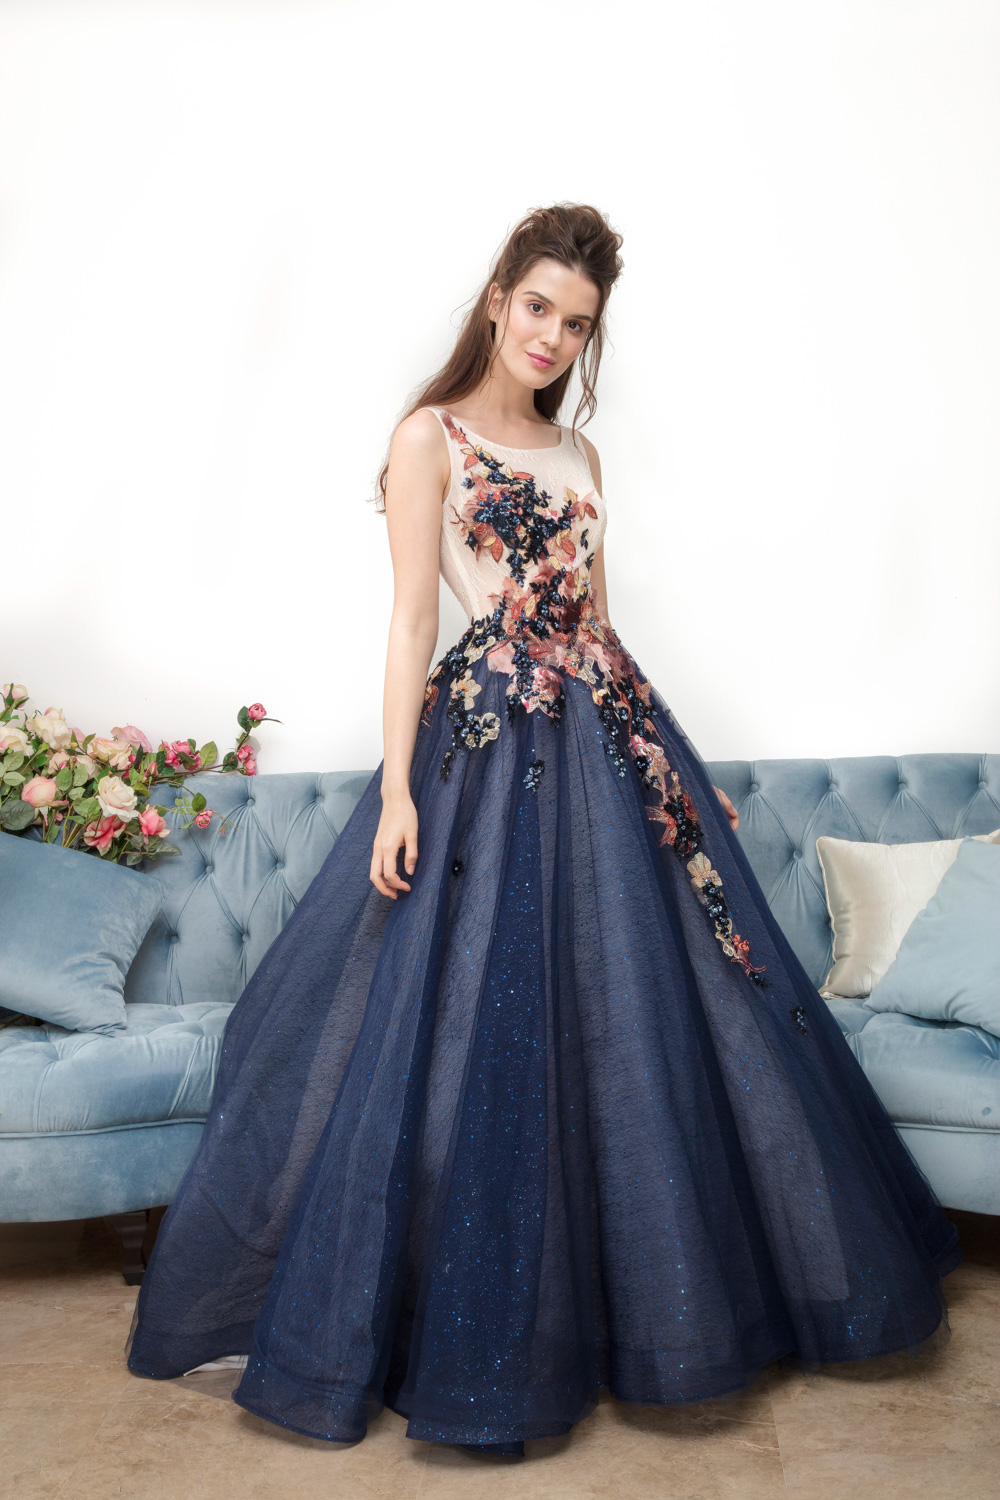 Blue evening dress with floral detail by CCM Wedding